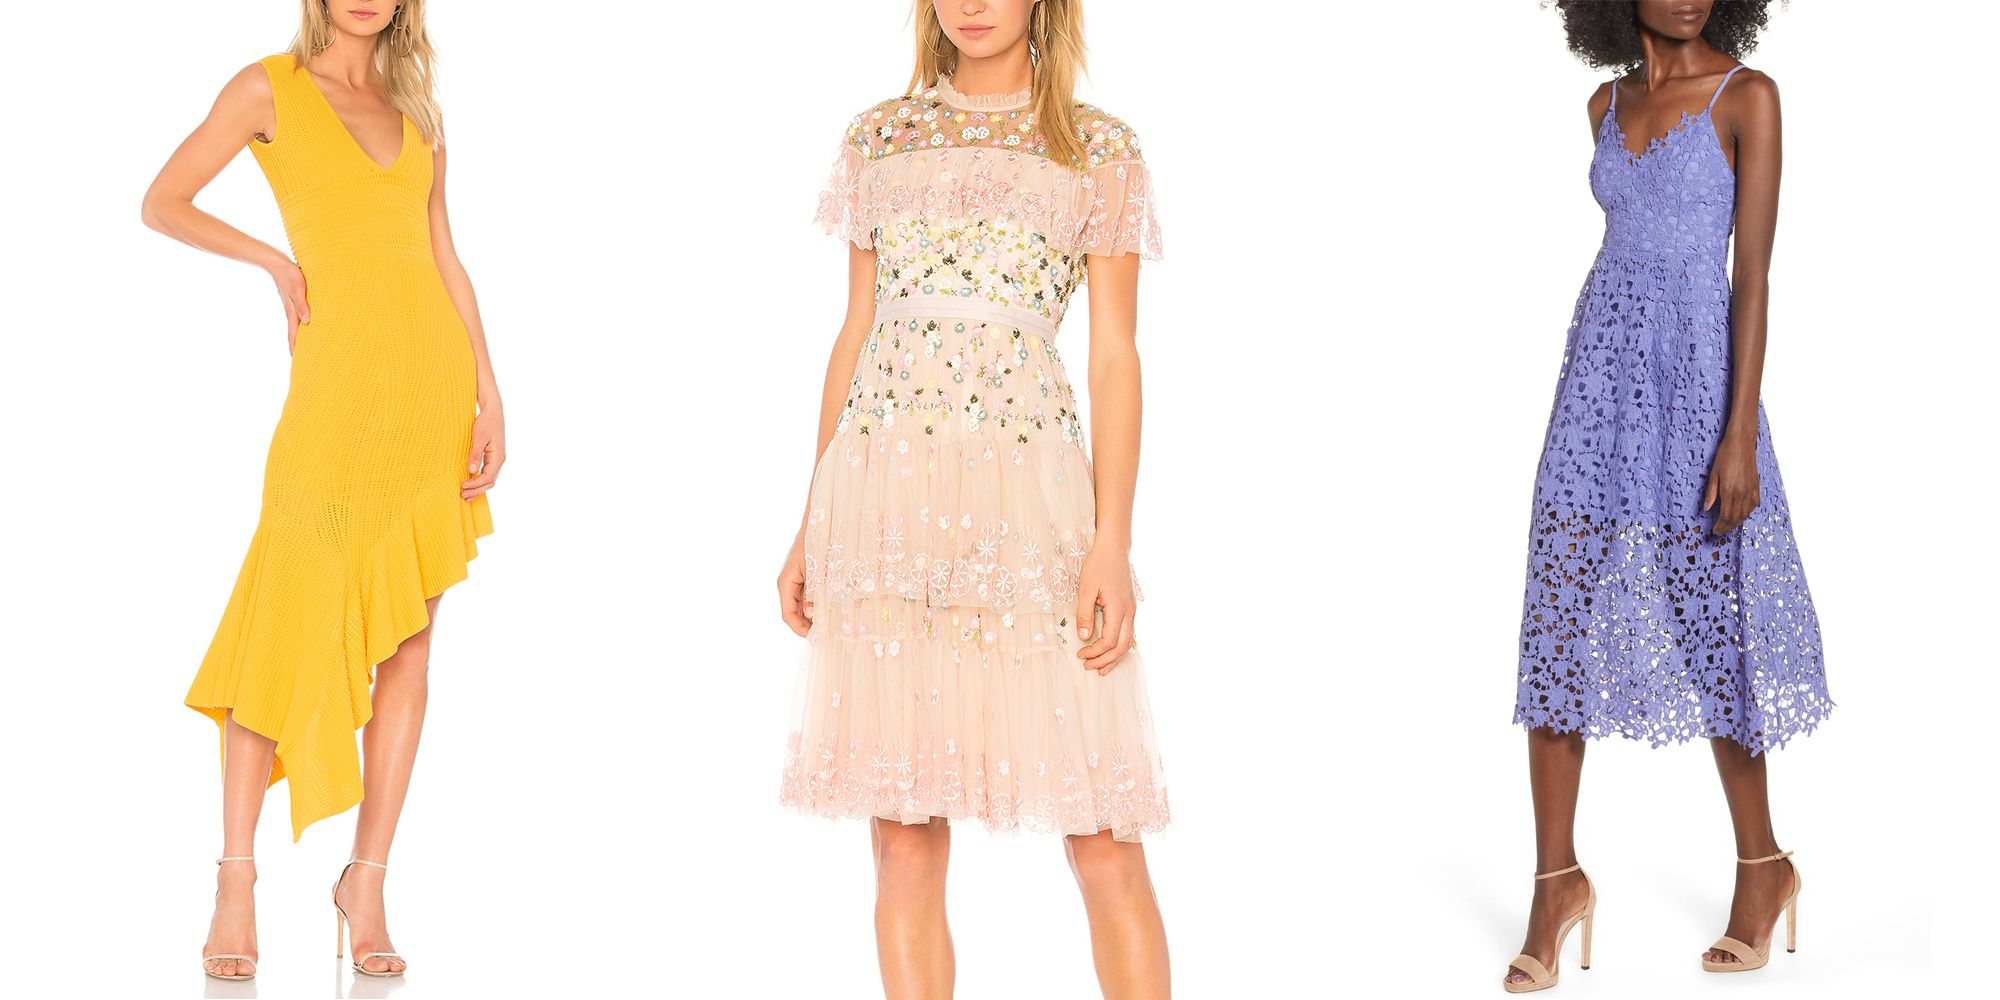 22 Chic Spring Wedding Guest Dresses